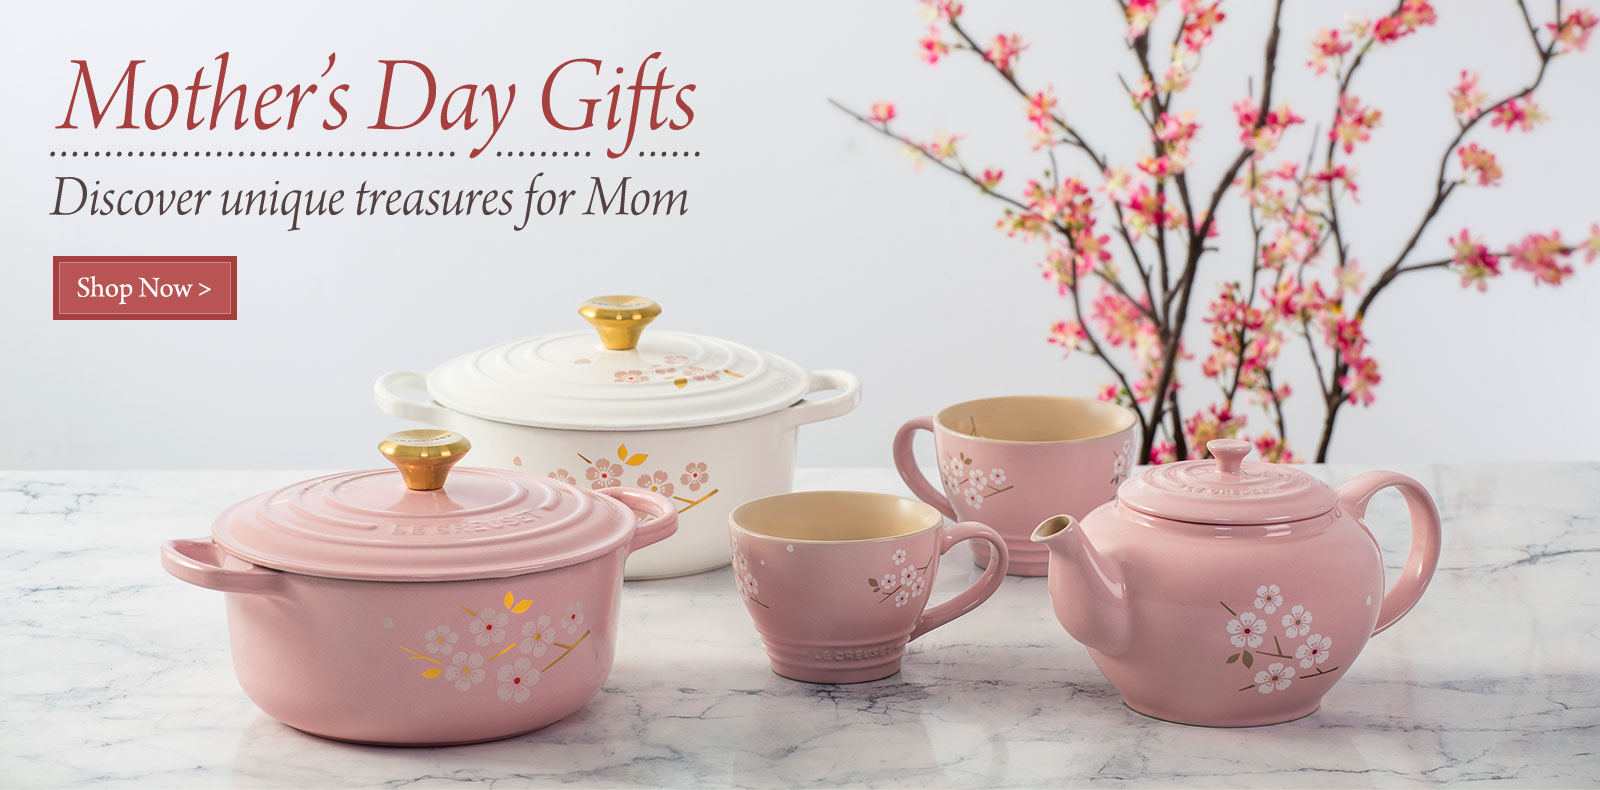 Mother's Day Gifts - Discover unique treasures for Mom.